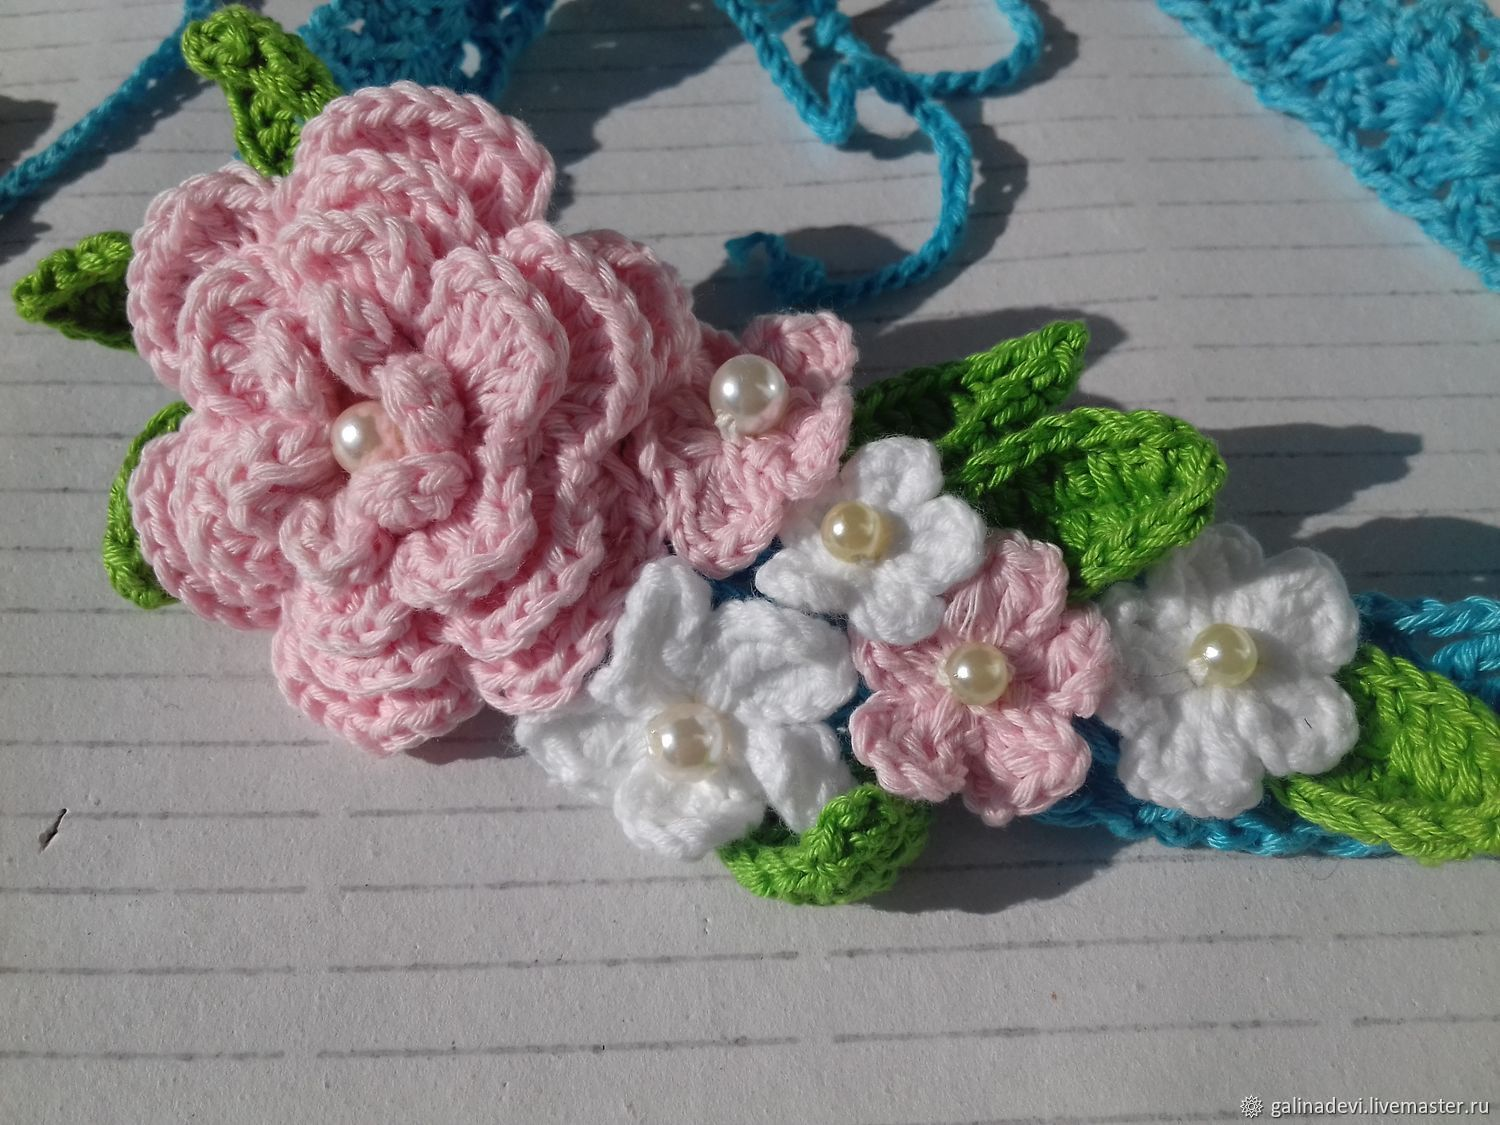 Accessories for the photoshoot: HEADBANDS knitted for girls, Photo Shoot Accessories, Moscow,  Фото №1